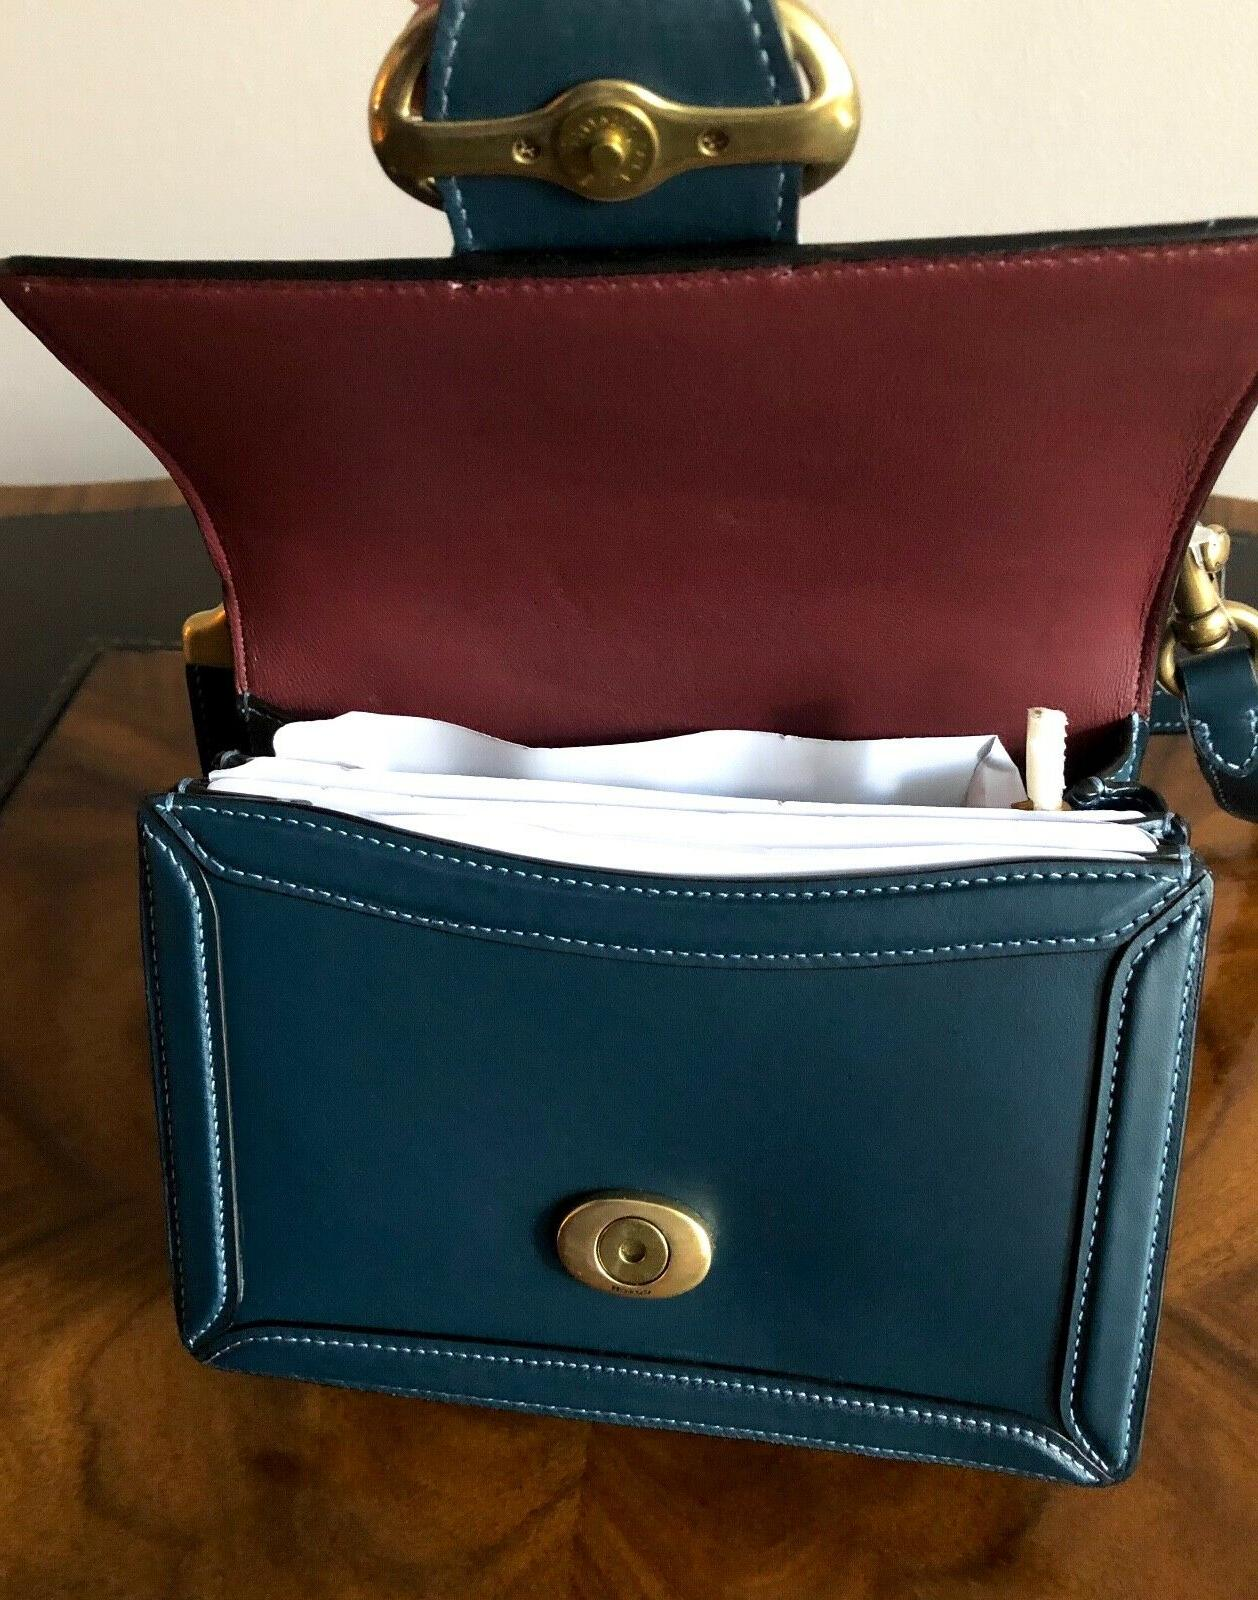 Sold Out NWT 1941 Leather 18 Crossbody Bag